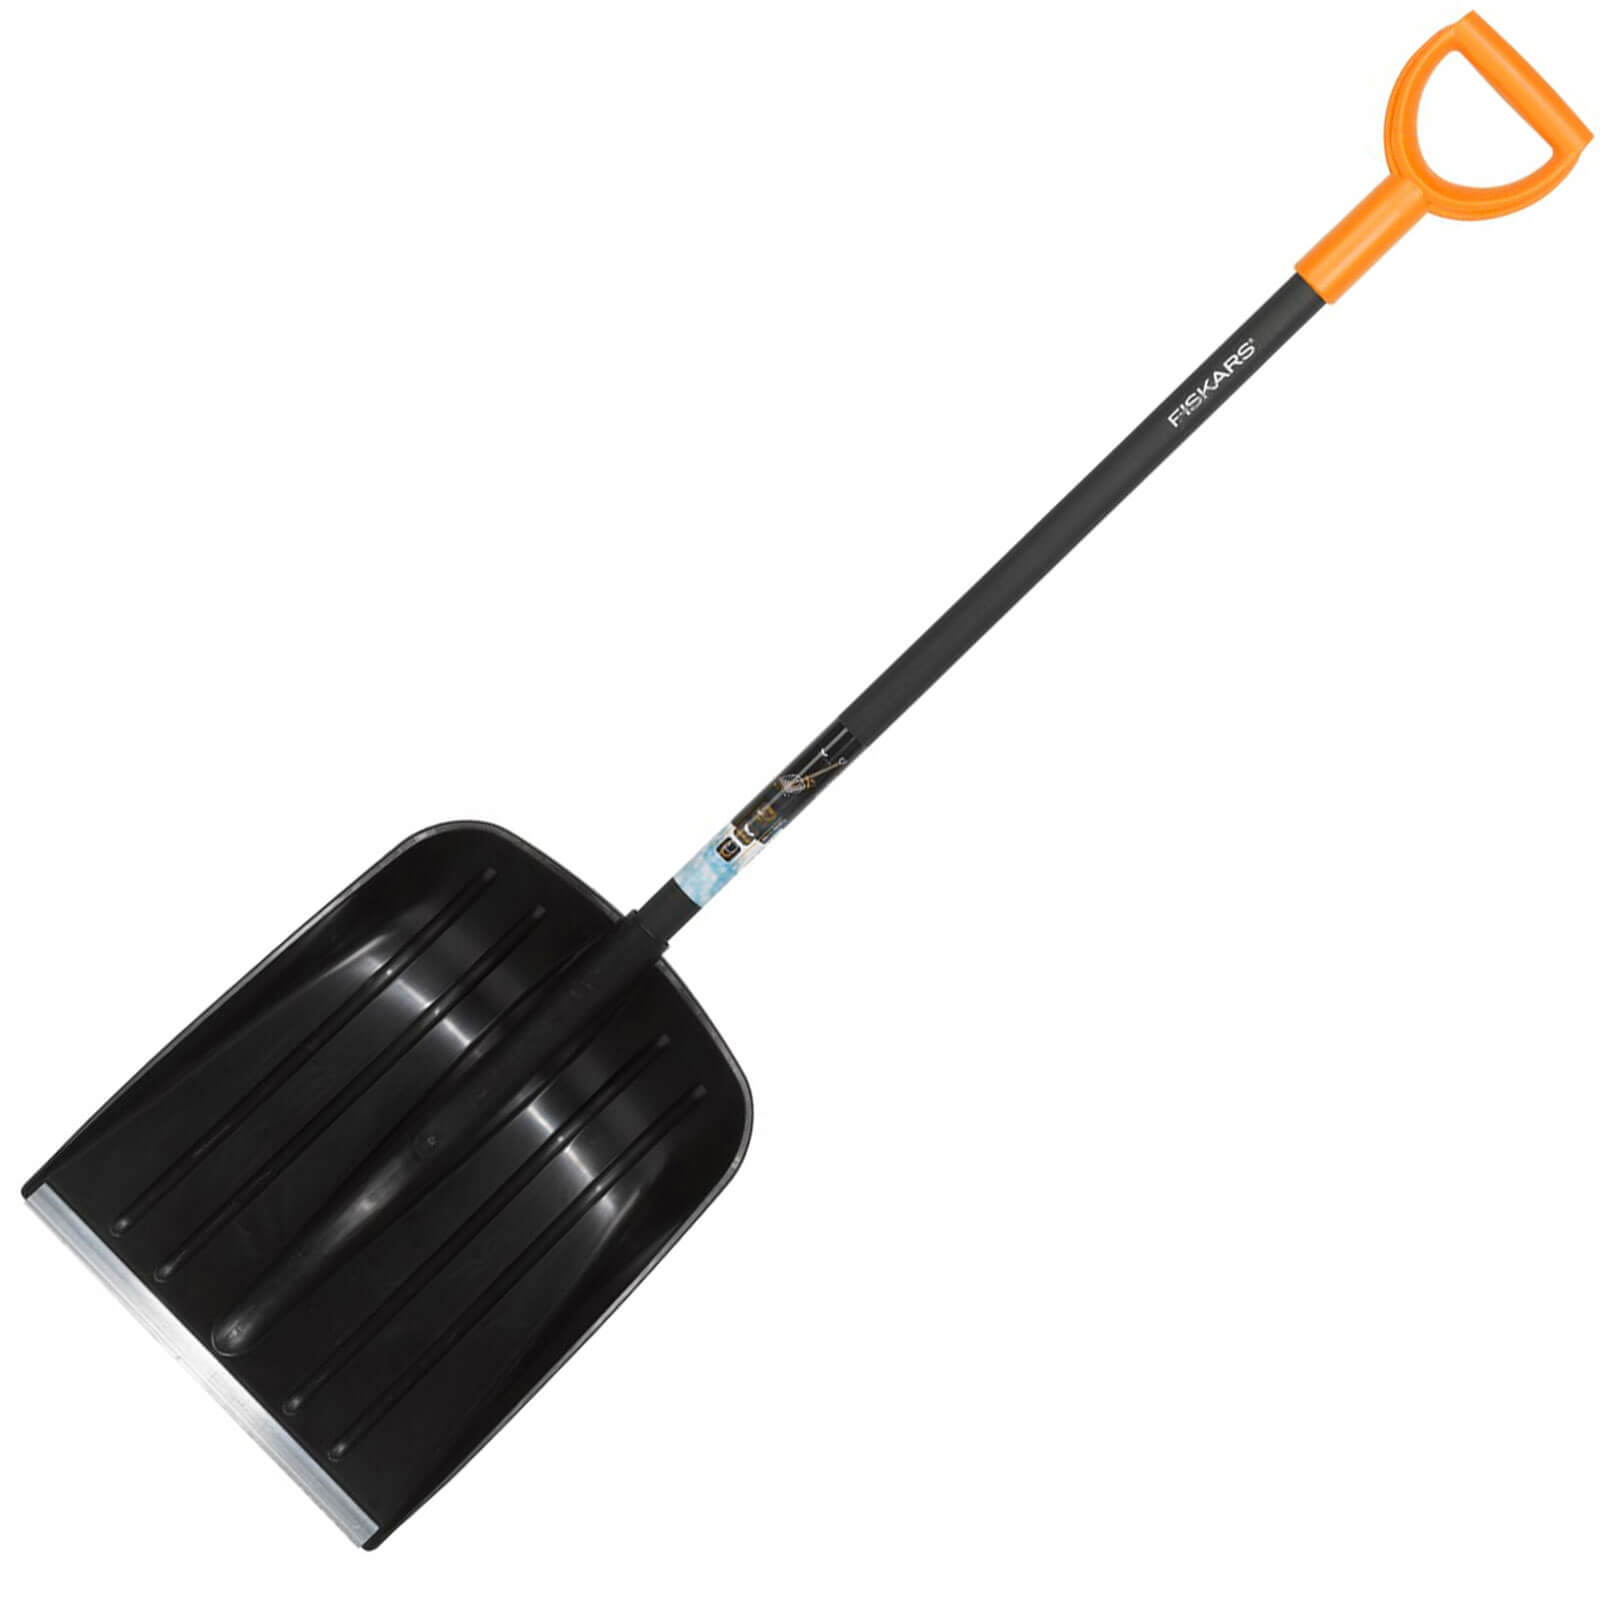 Buy cheap snow shovel compare garden tools prices for for Affordable garden tools